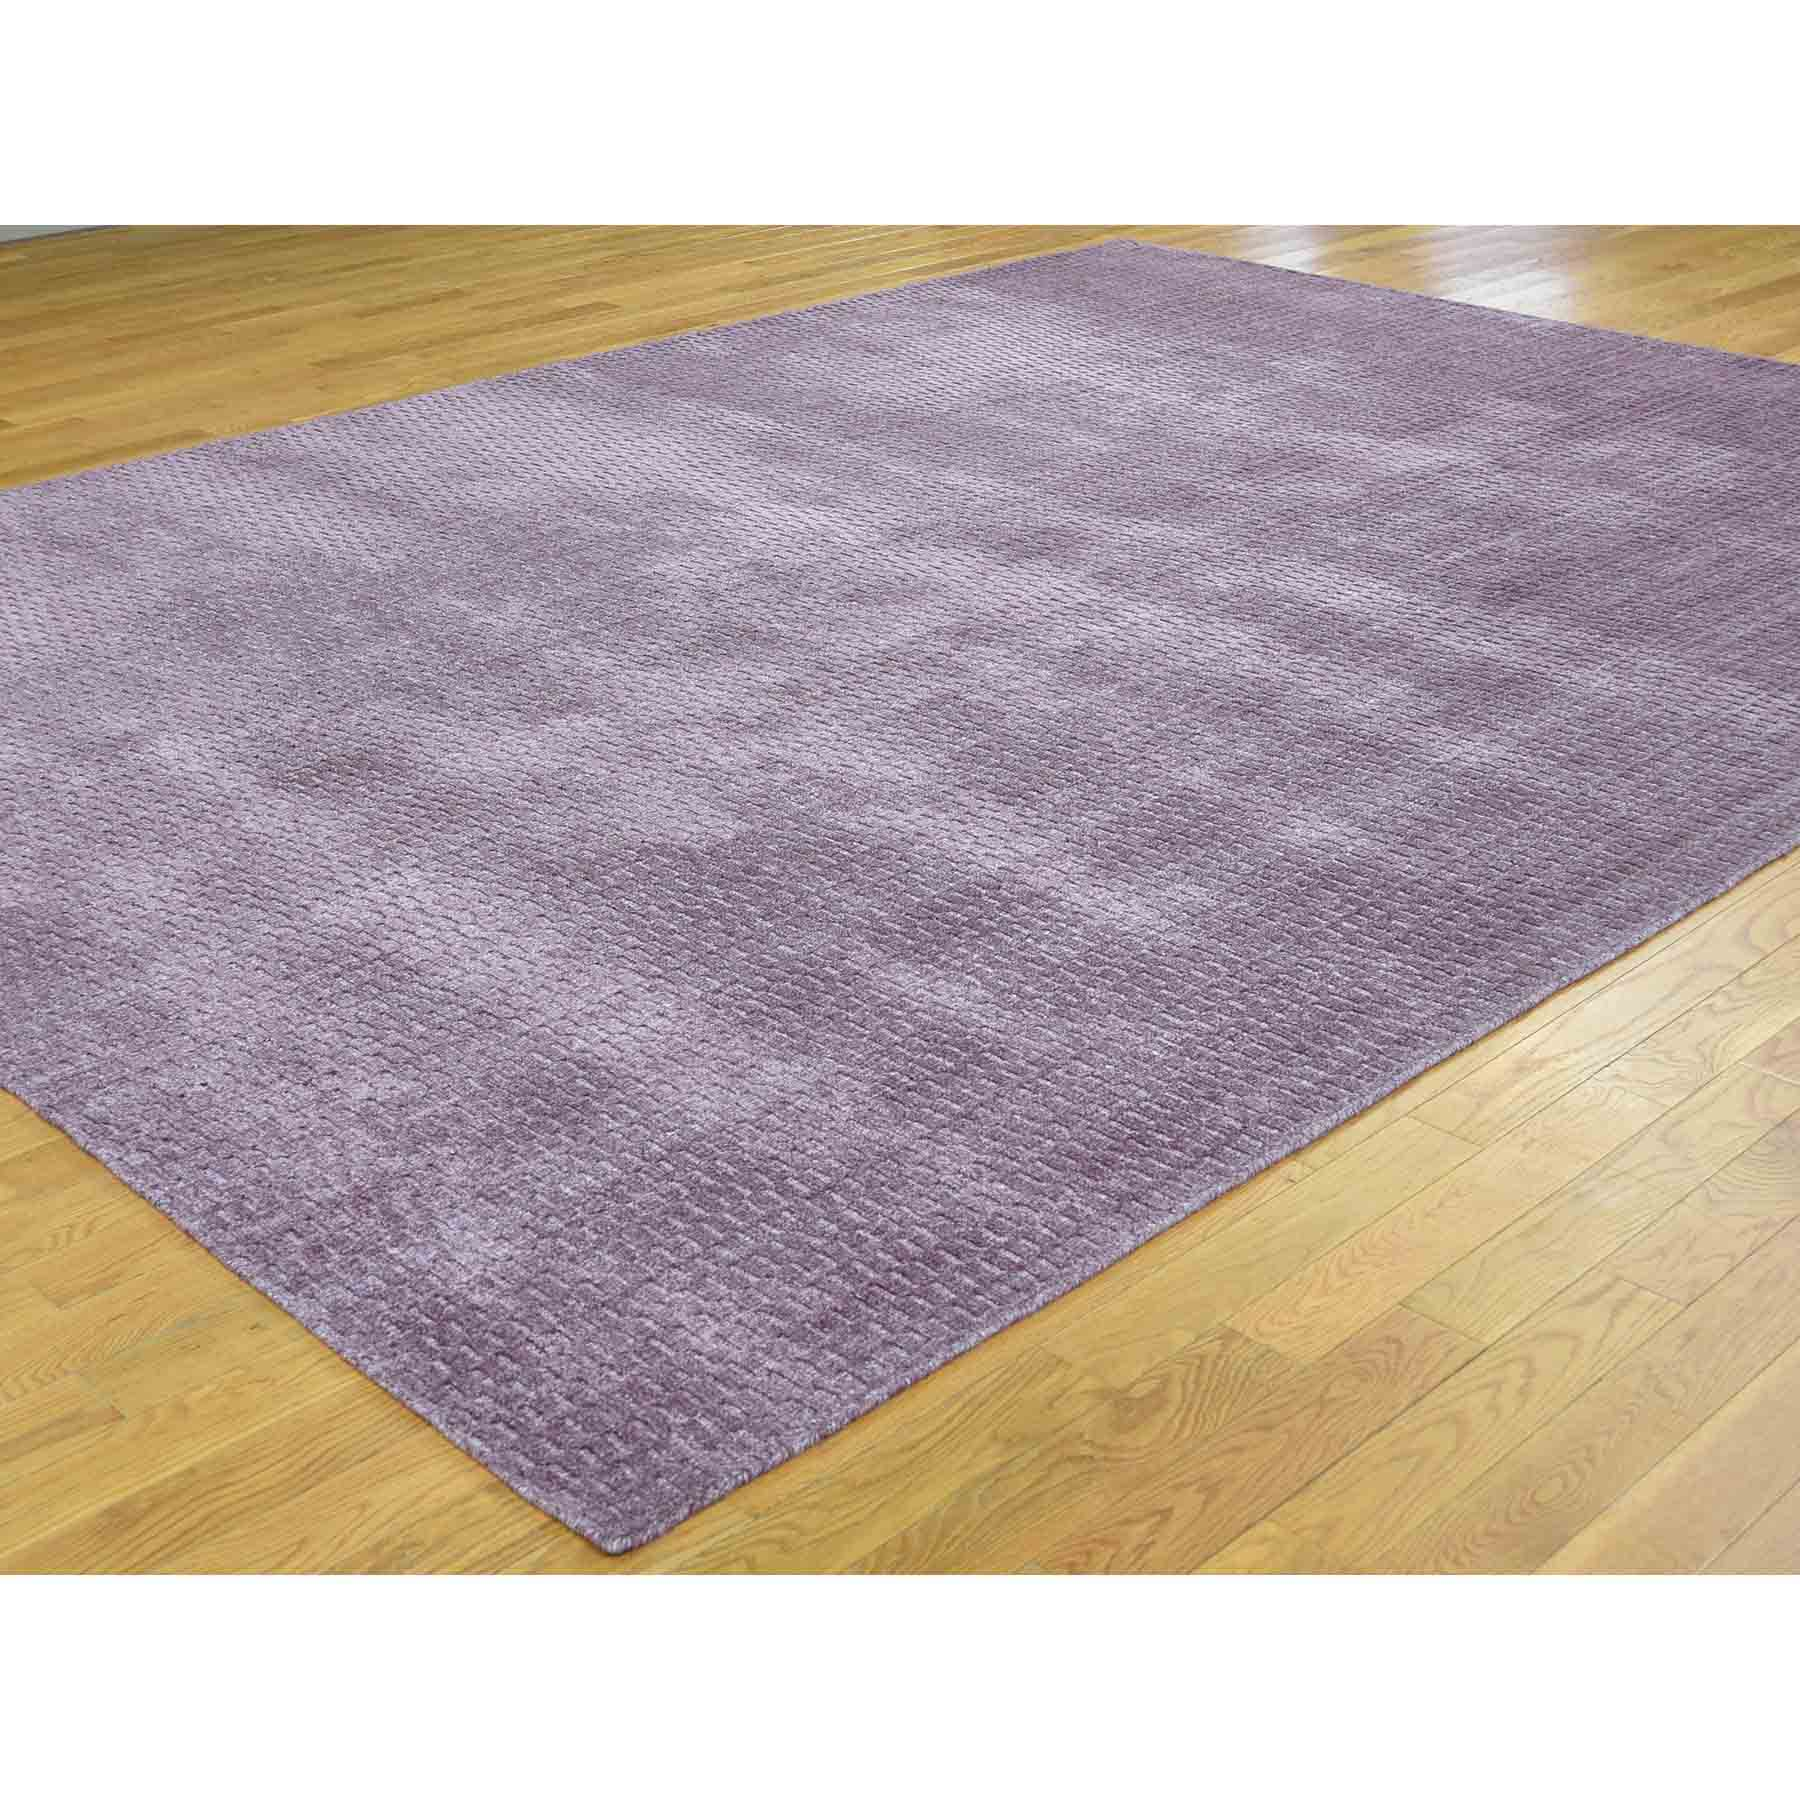 Modern-Contemporary-Loomed-Rug-198980